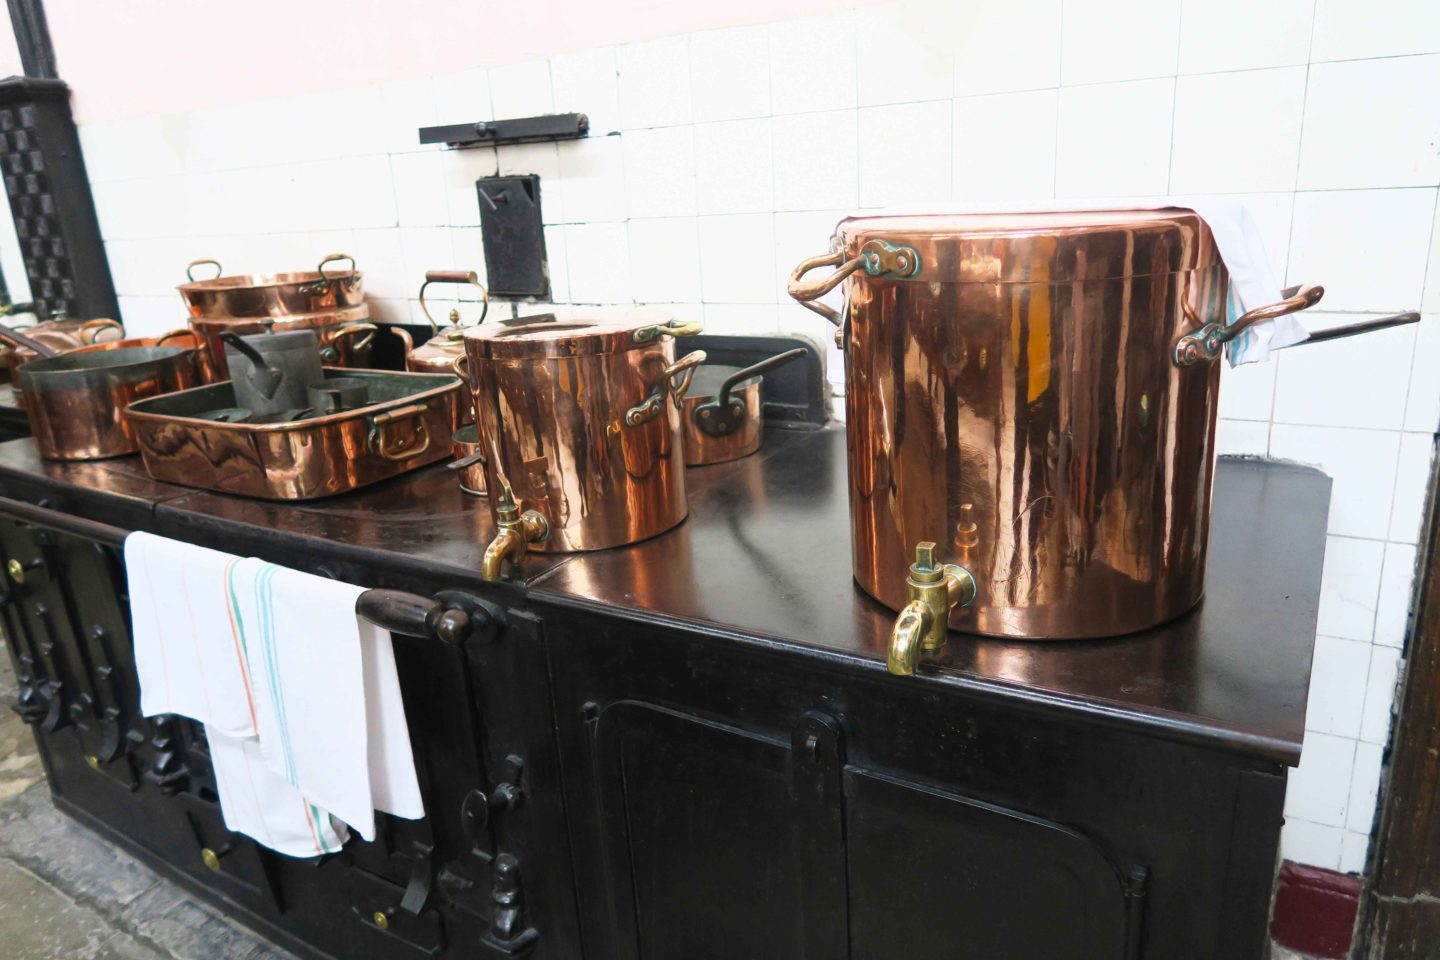 copper cooking equipment at lanhydrock house in cornwall